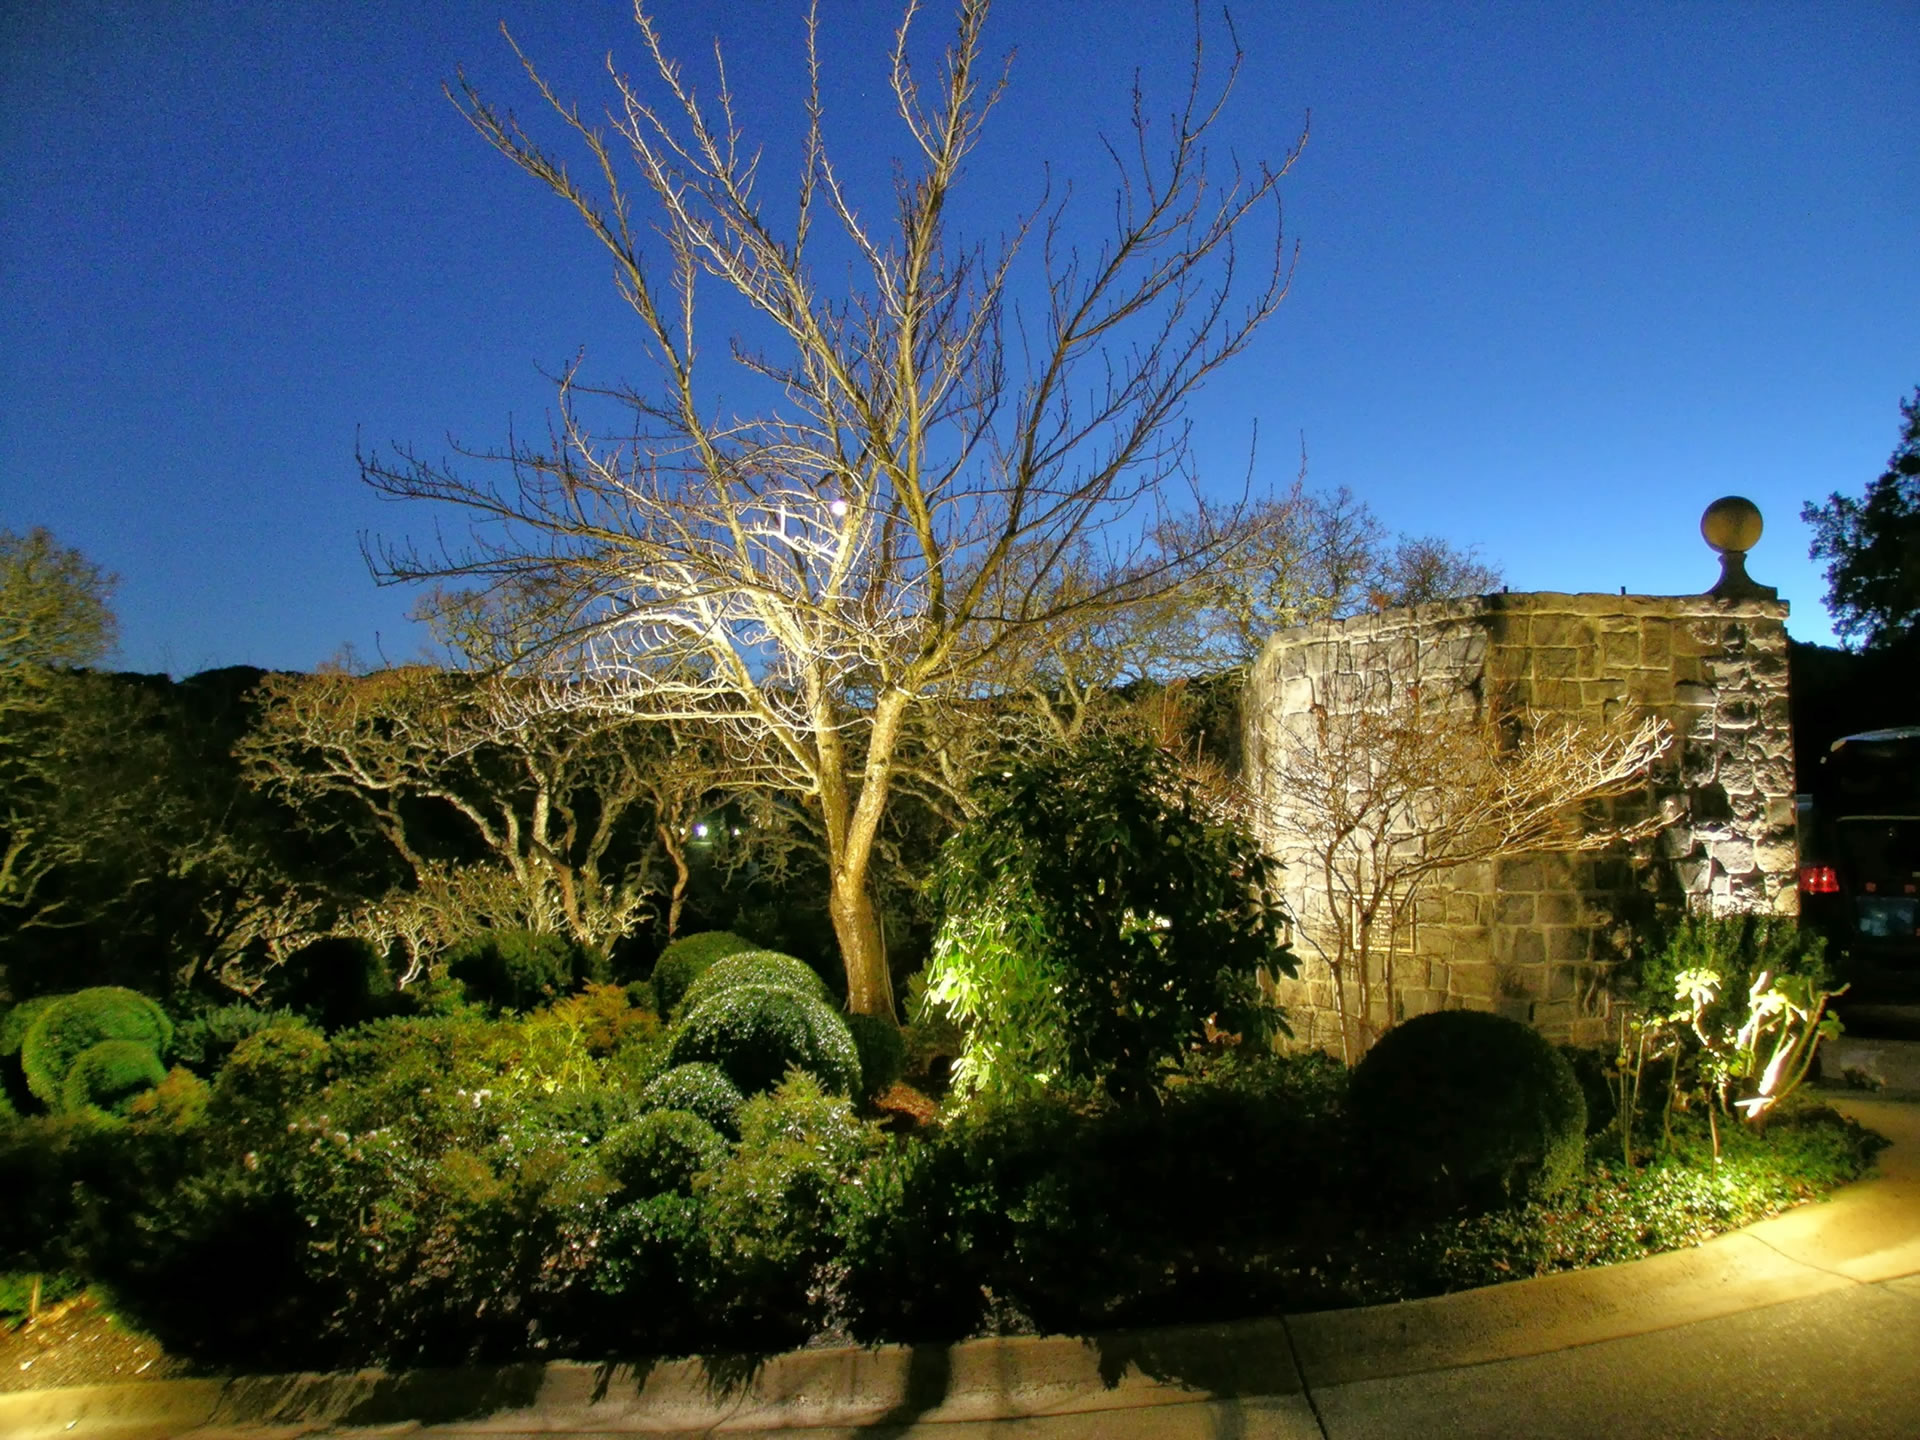 Landscape Lighting Led Conversion : Alamo led landscape lighting conversion by artistic illumination